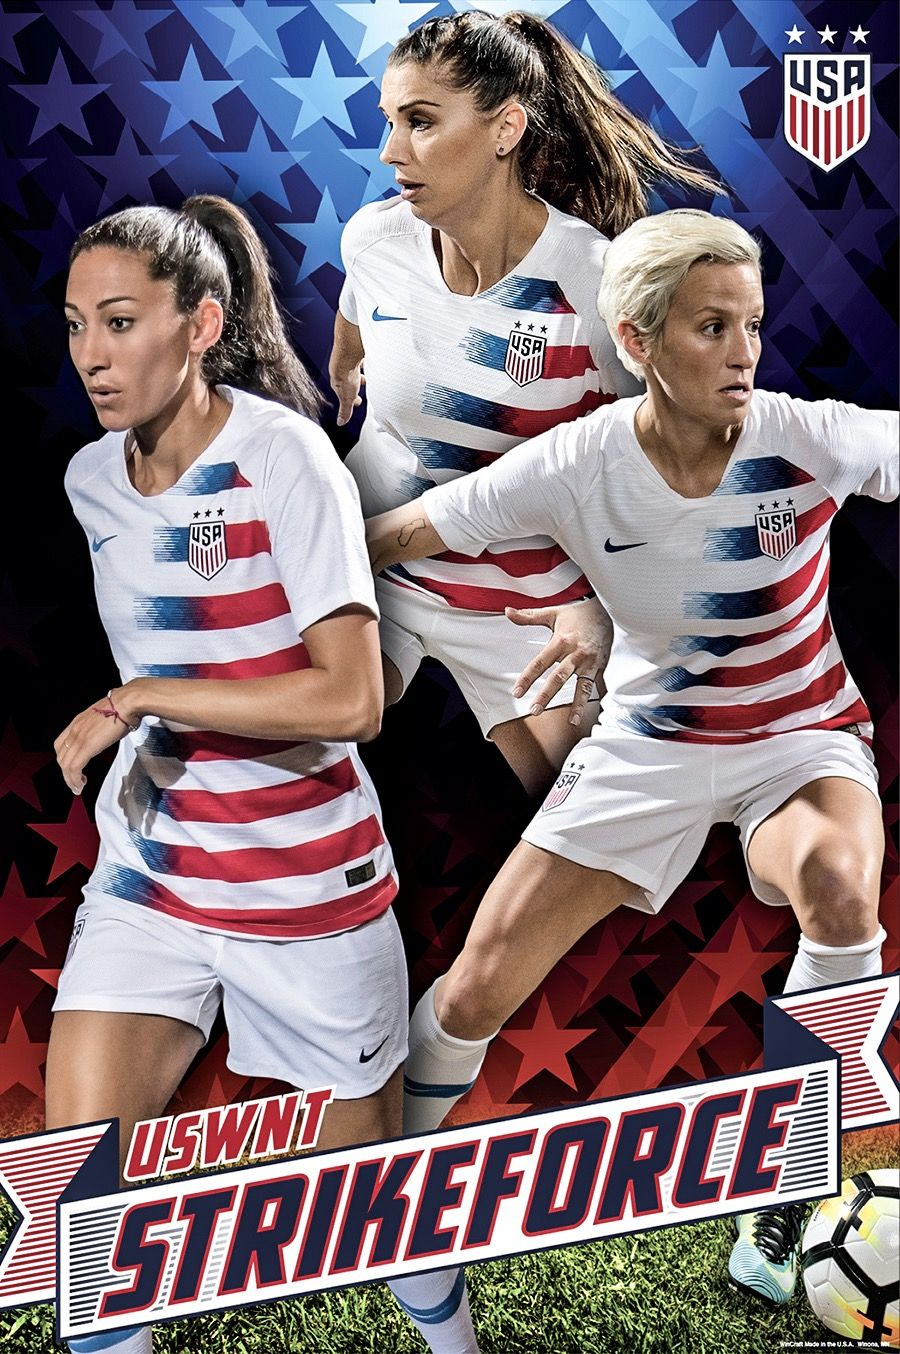 Christen Press Alex Morgan And Megan Rapinoe 2019 Uswnt World Cup Team Strike Force Poster Usa Soccer Women Uswnt Soccer Usa Soccer Team